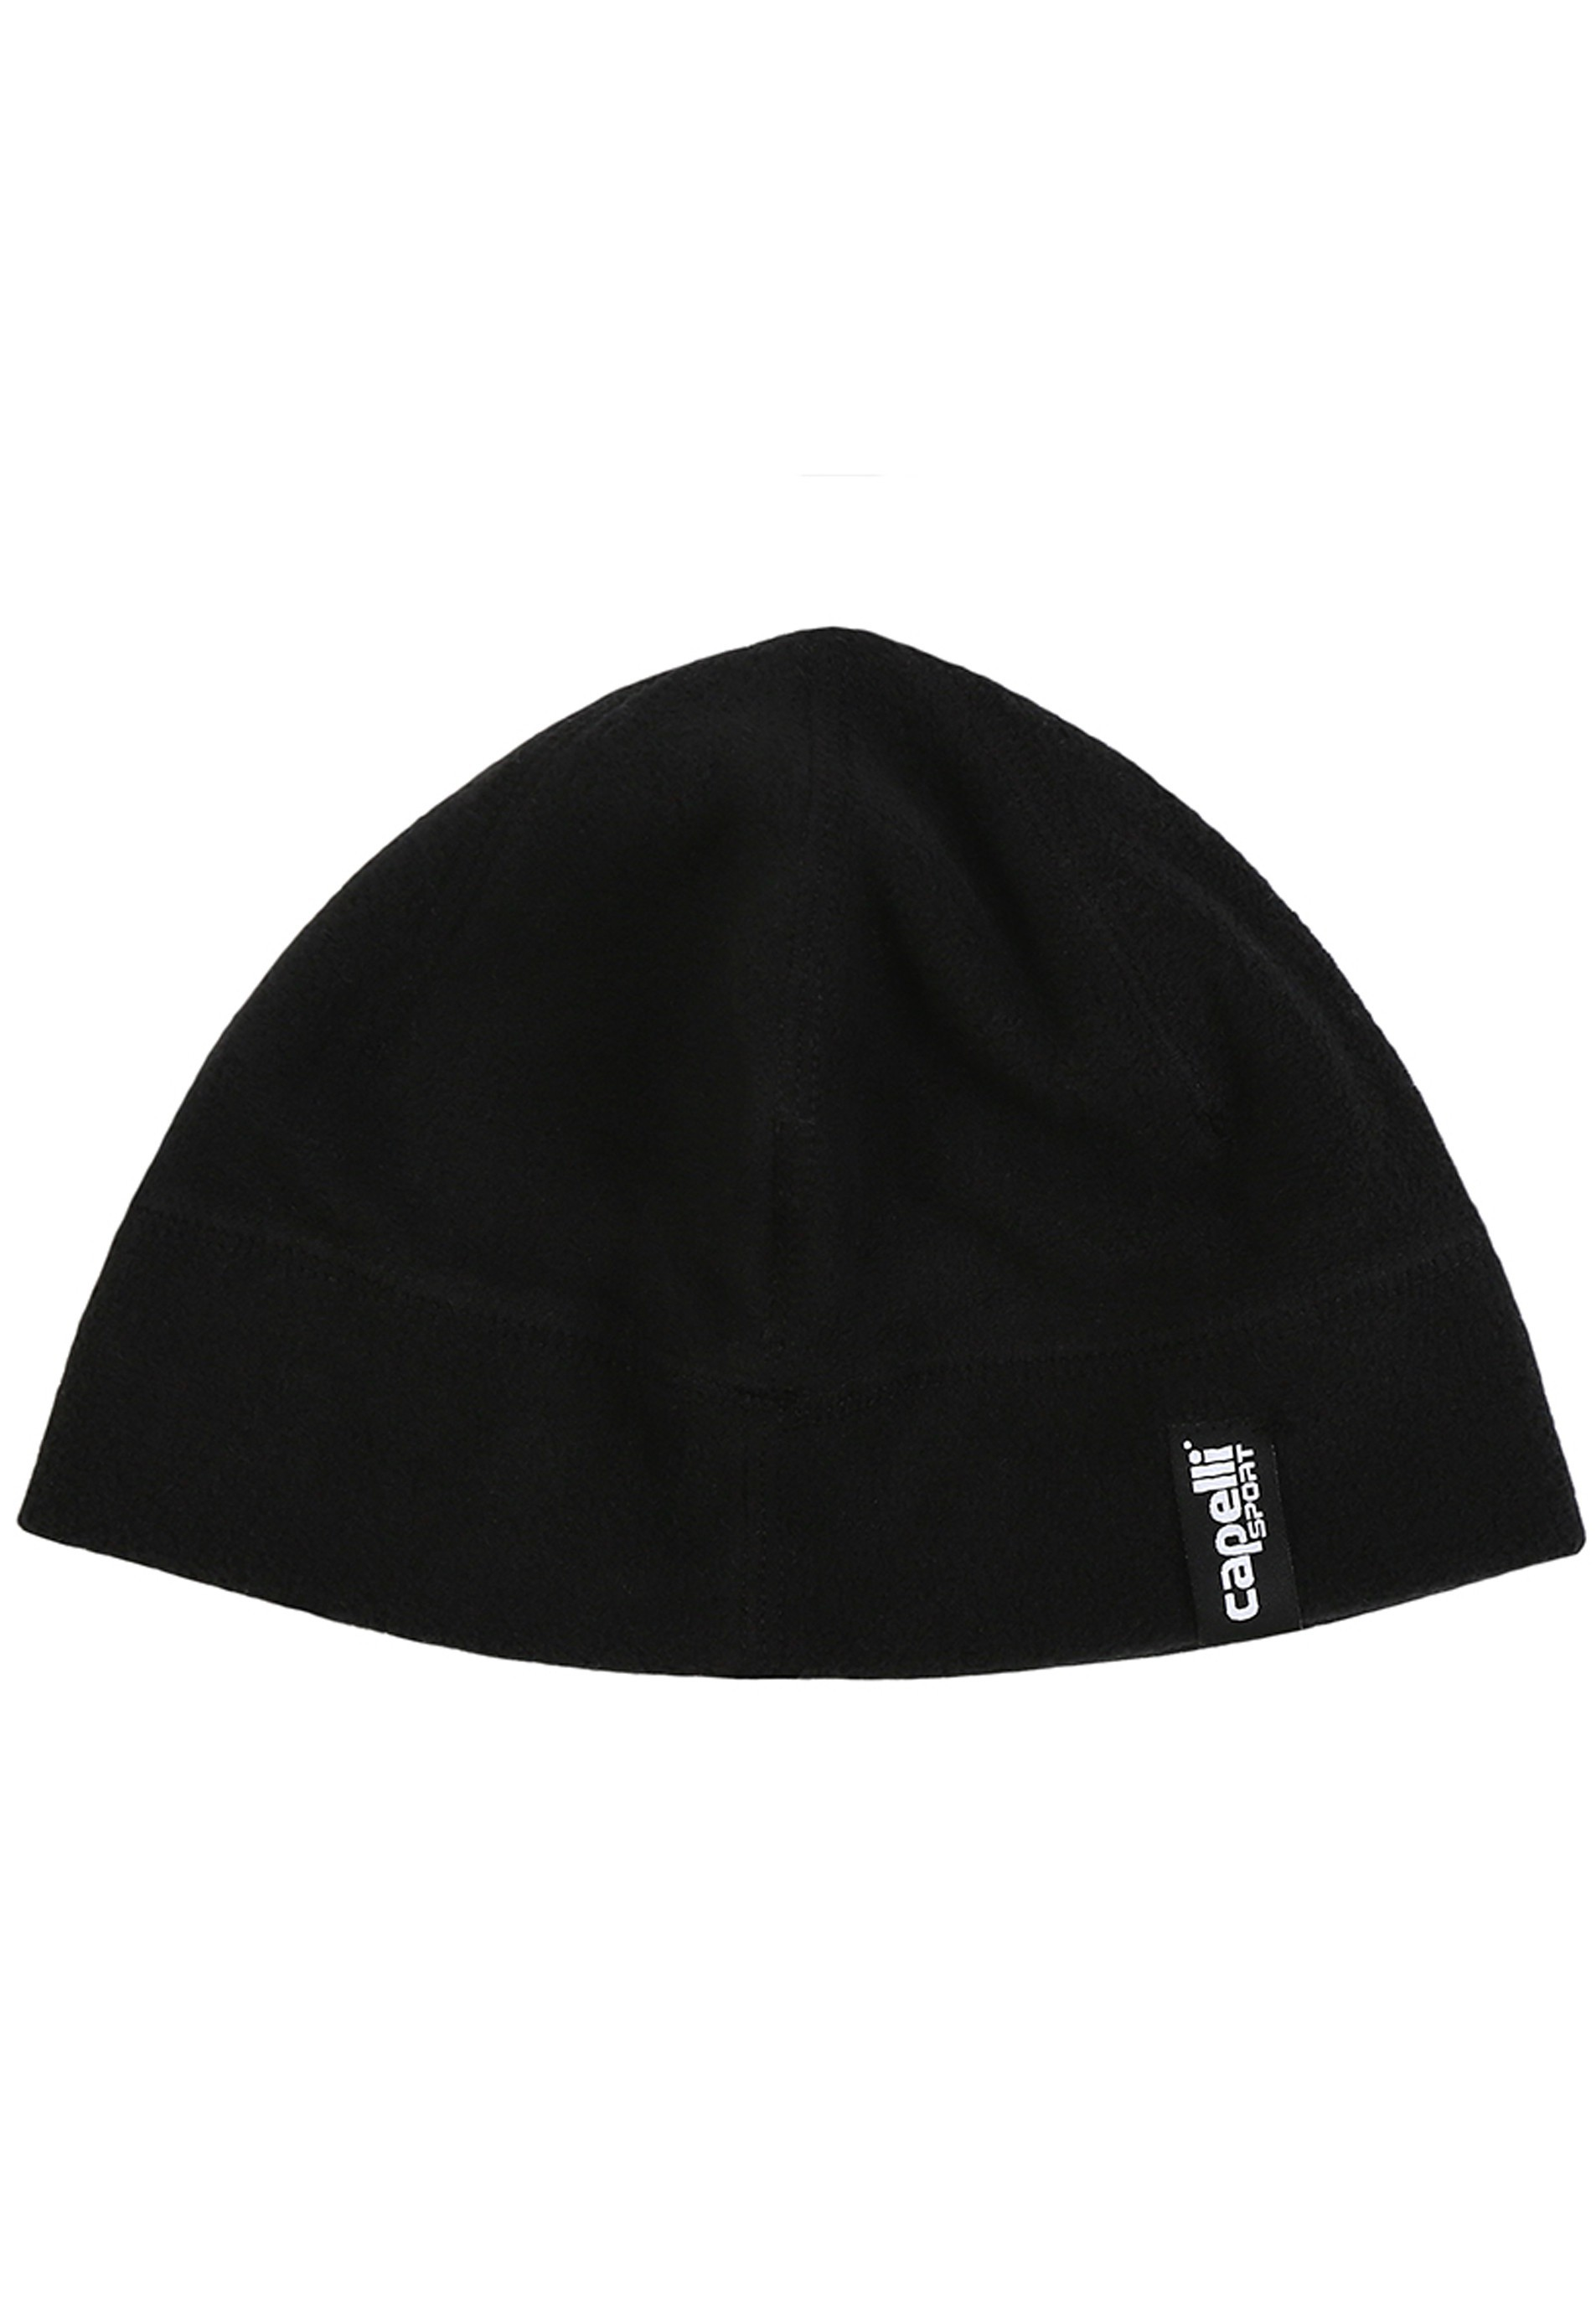 Herren CS One Fleece Beanie